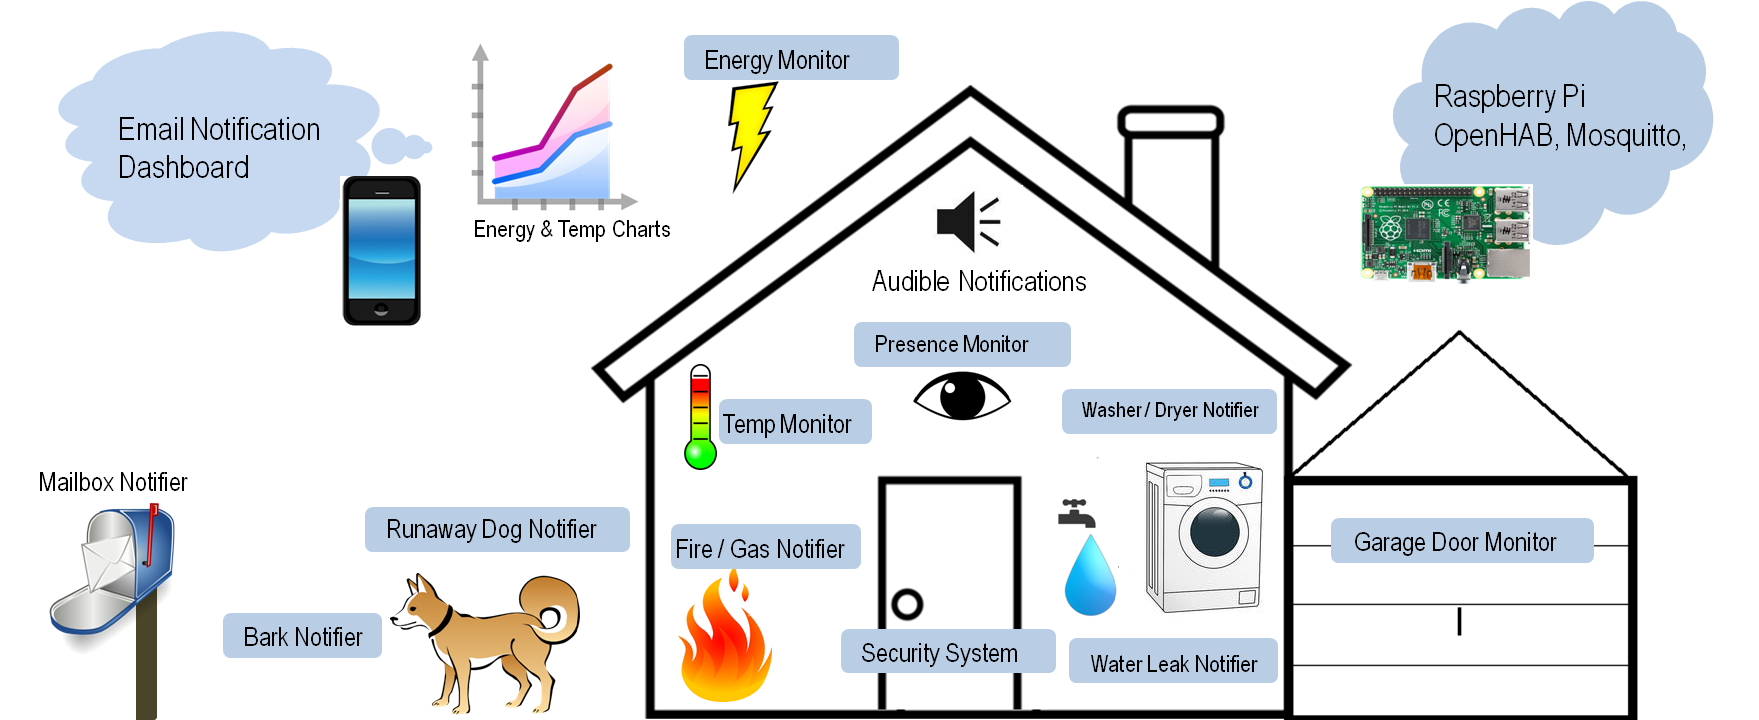 Open Source Home Automation Project using Arduino